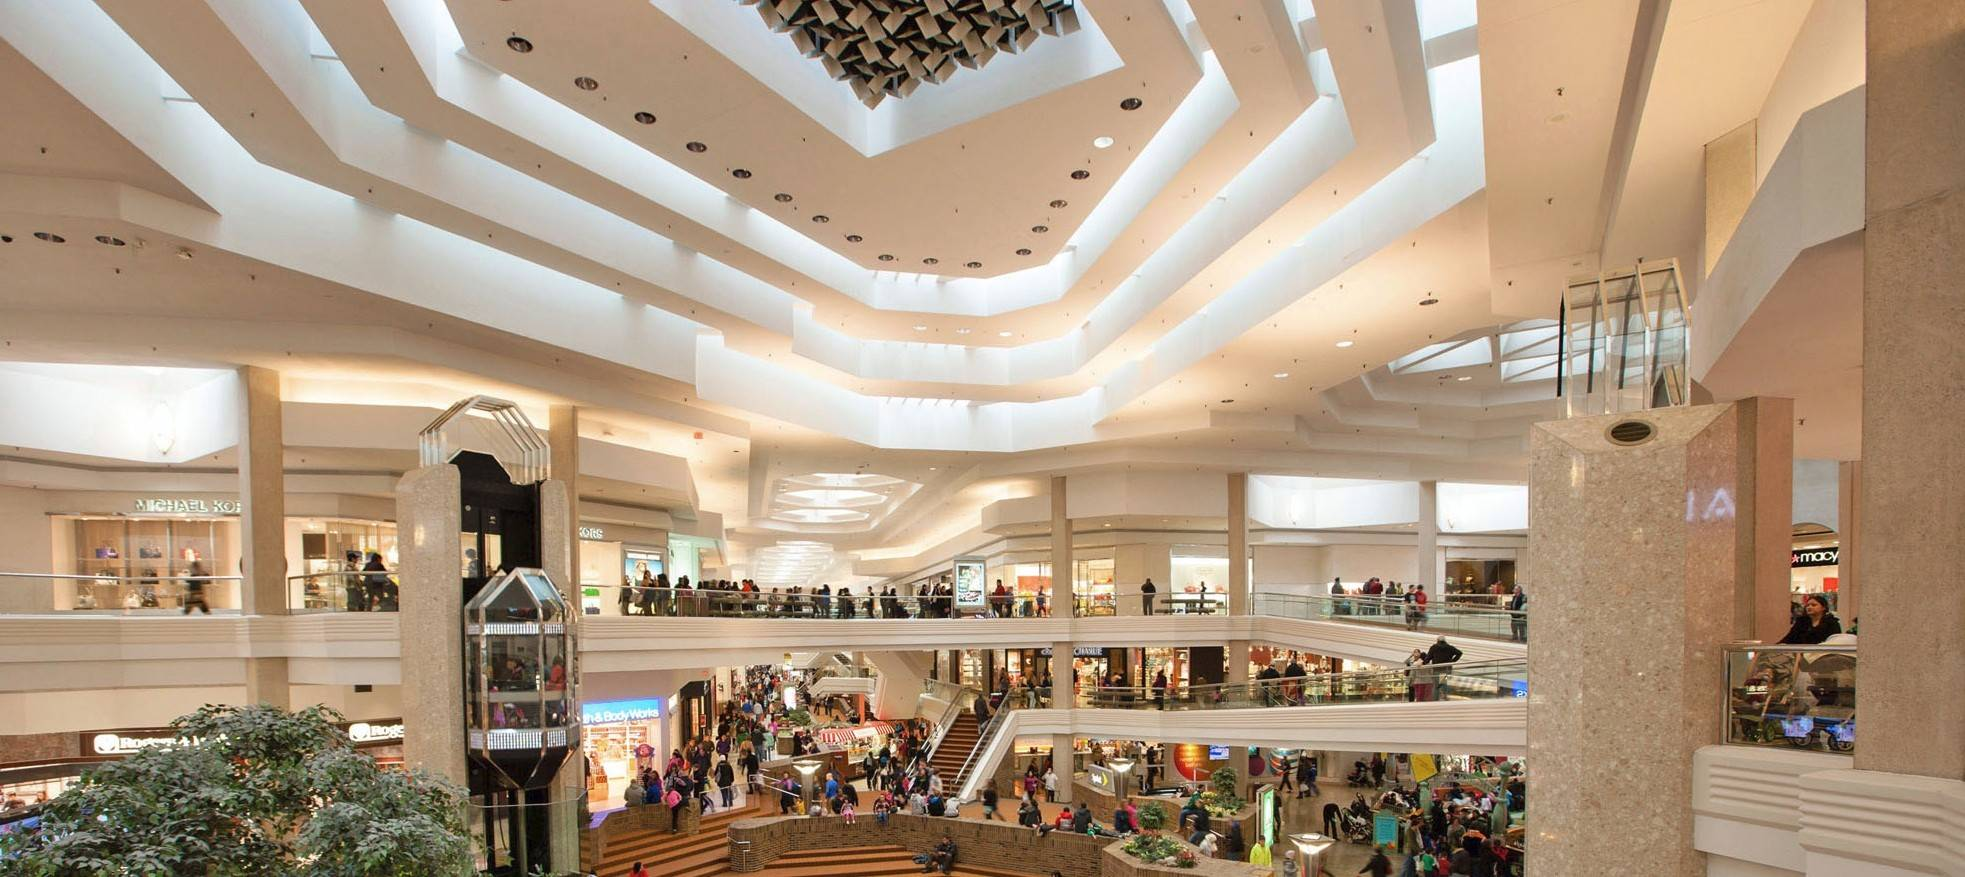 Details on Woodfield Mall's planned $13.9M renovation